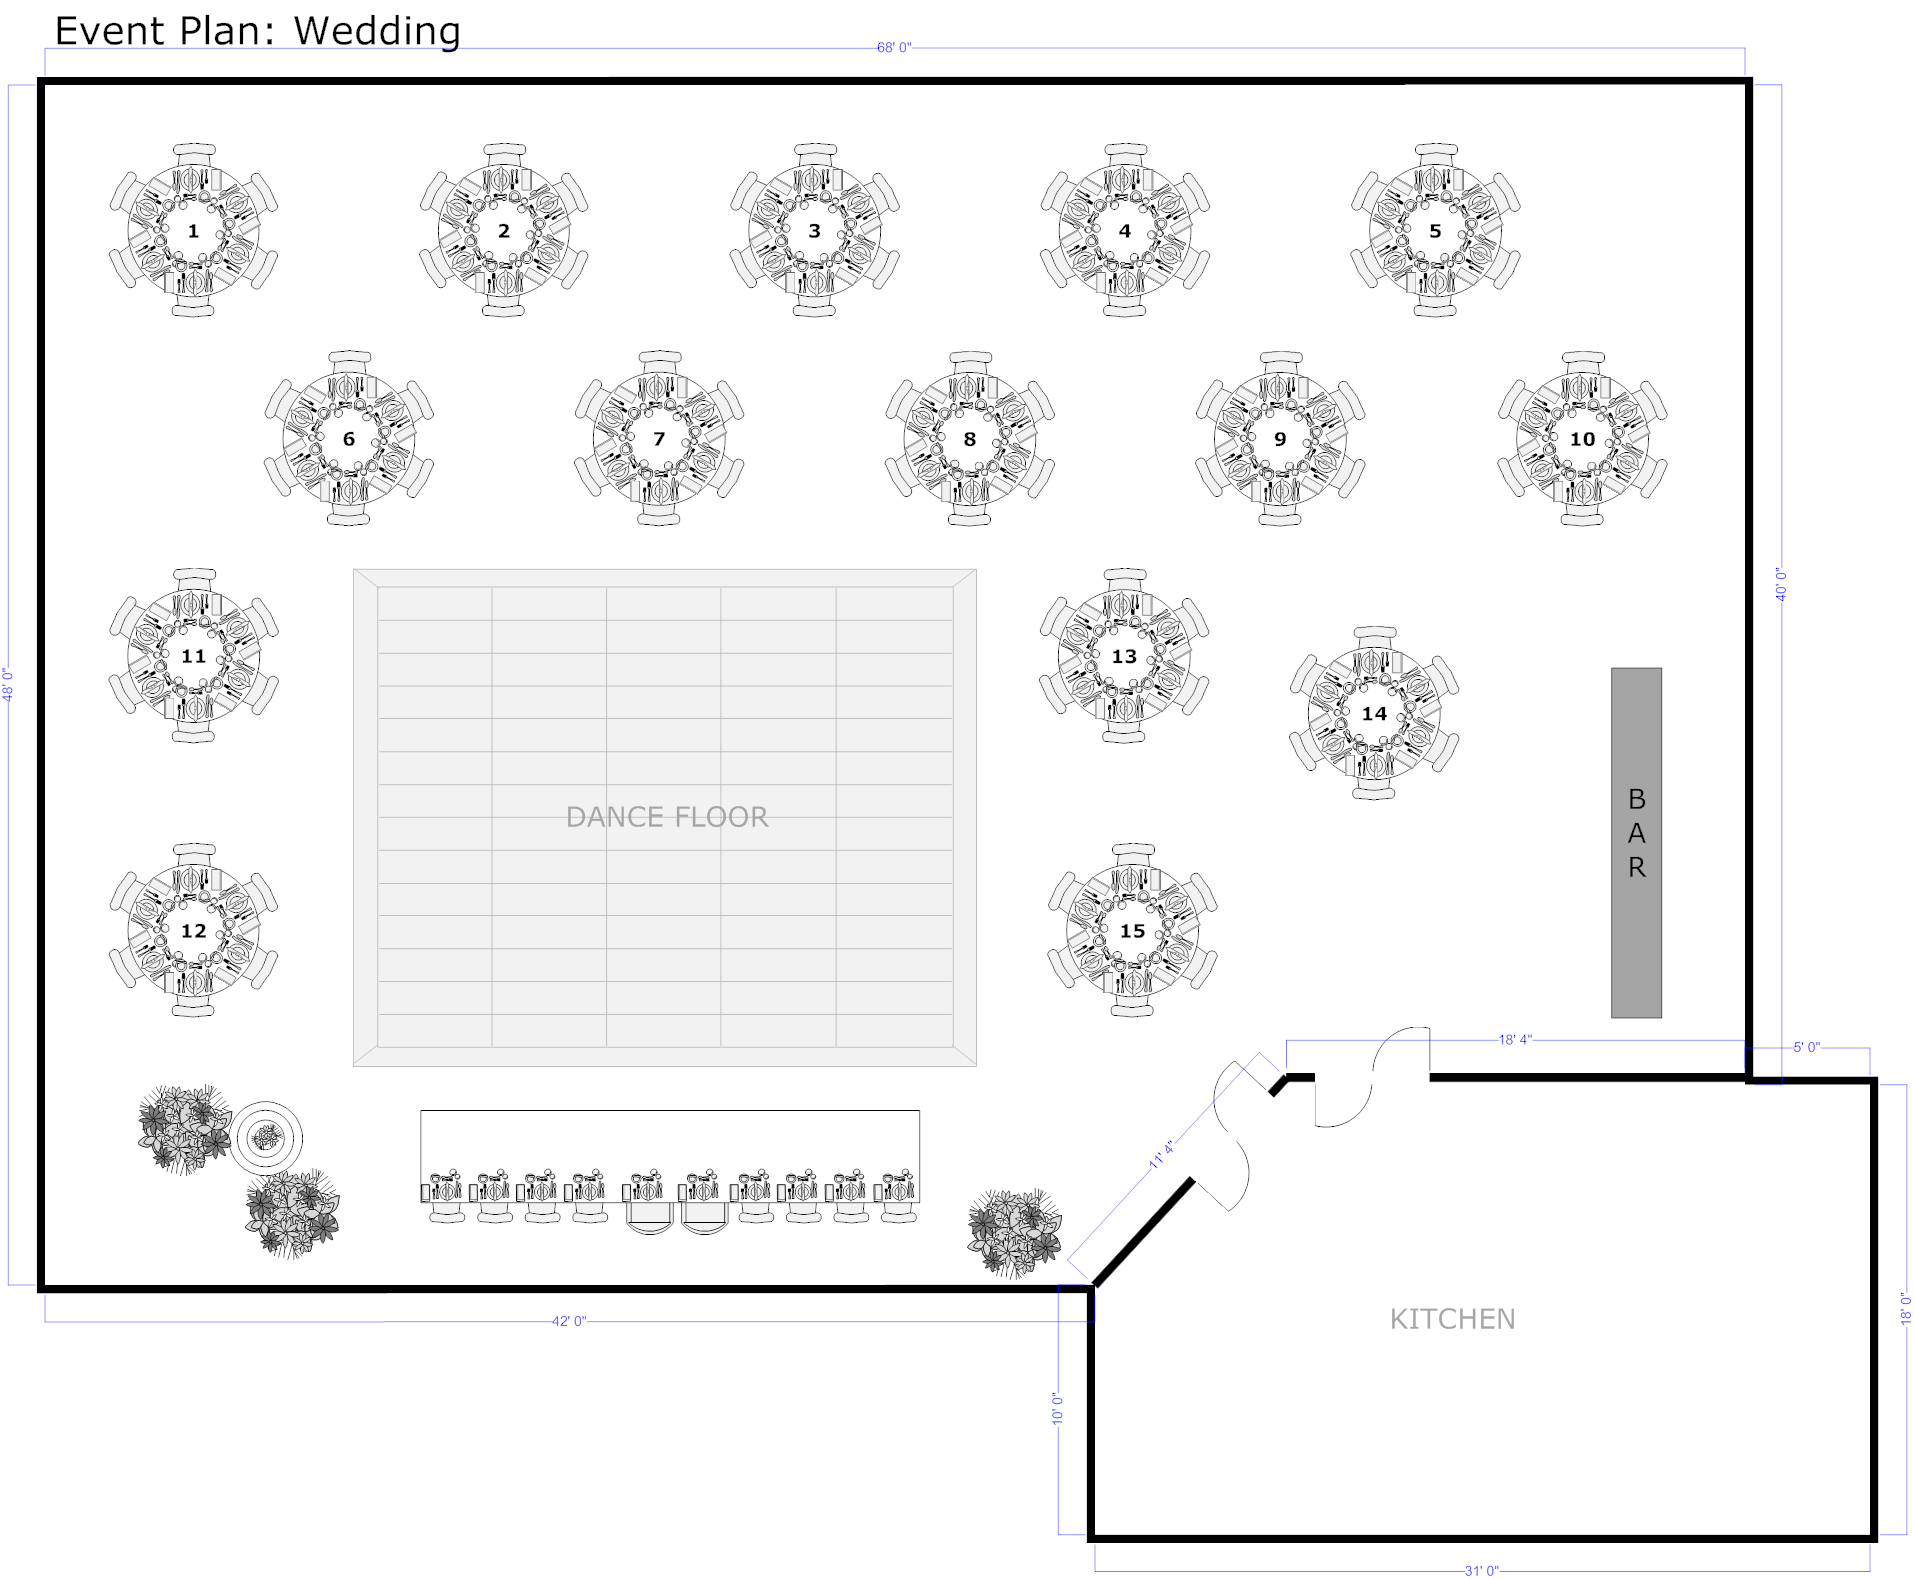 Event planning software try it free for easy layout